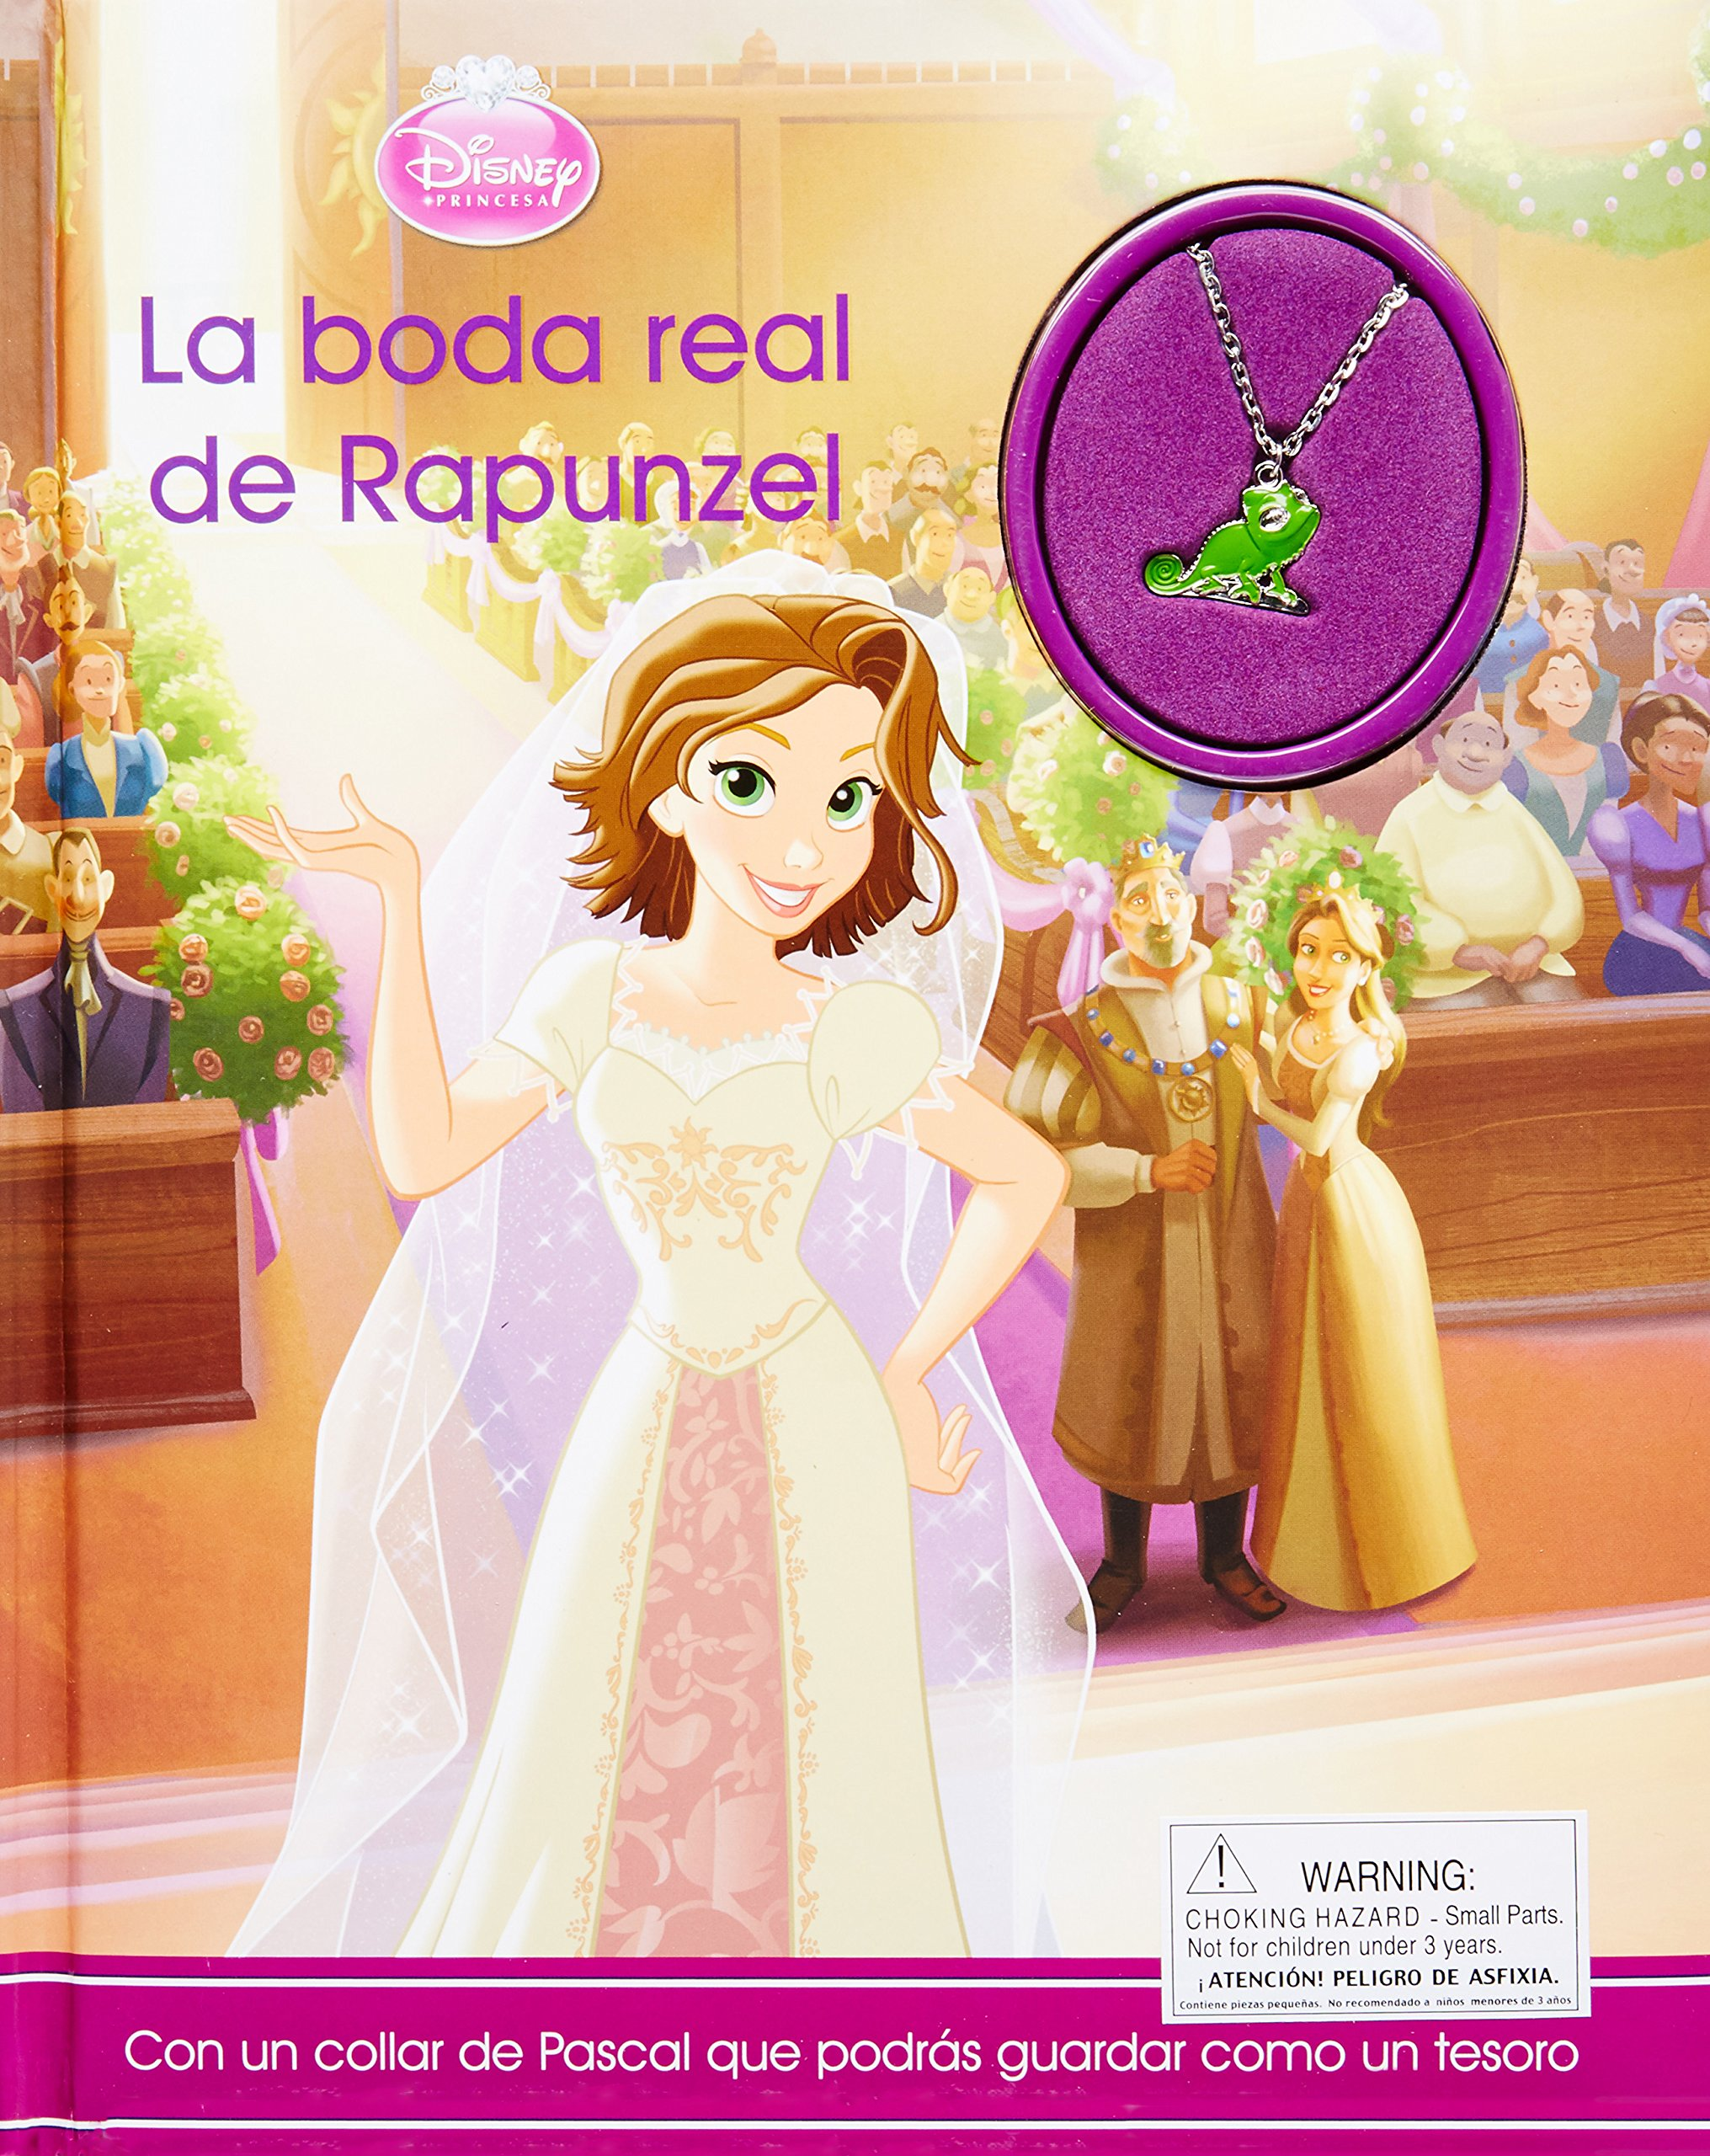 Disney La boda real de Rapunzel (Disney Charm) (Spanish Edition): Parragon Books: 9781472361554: Amazon.com: Books